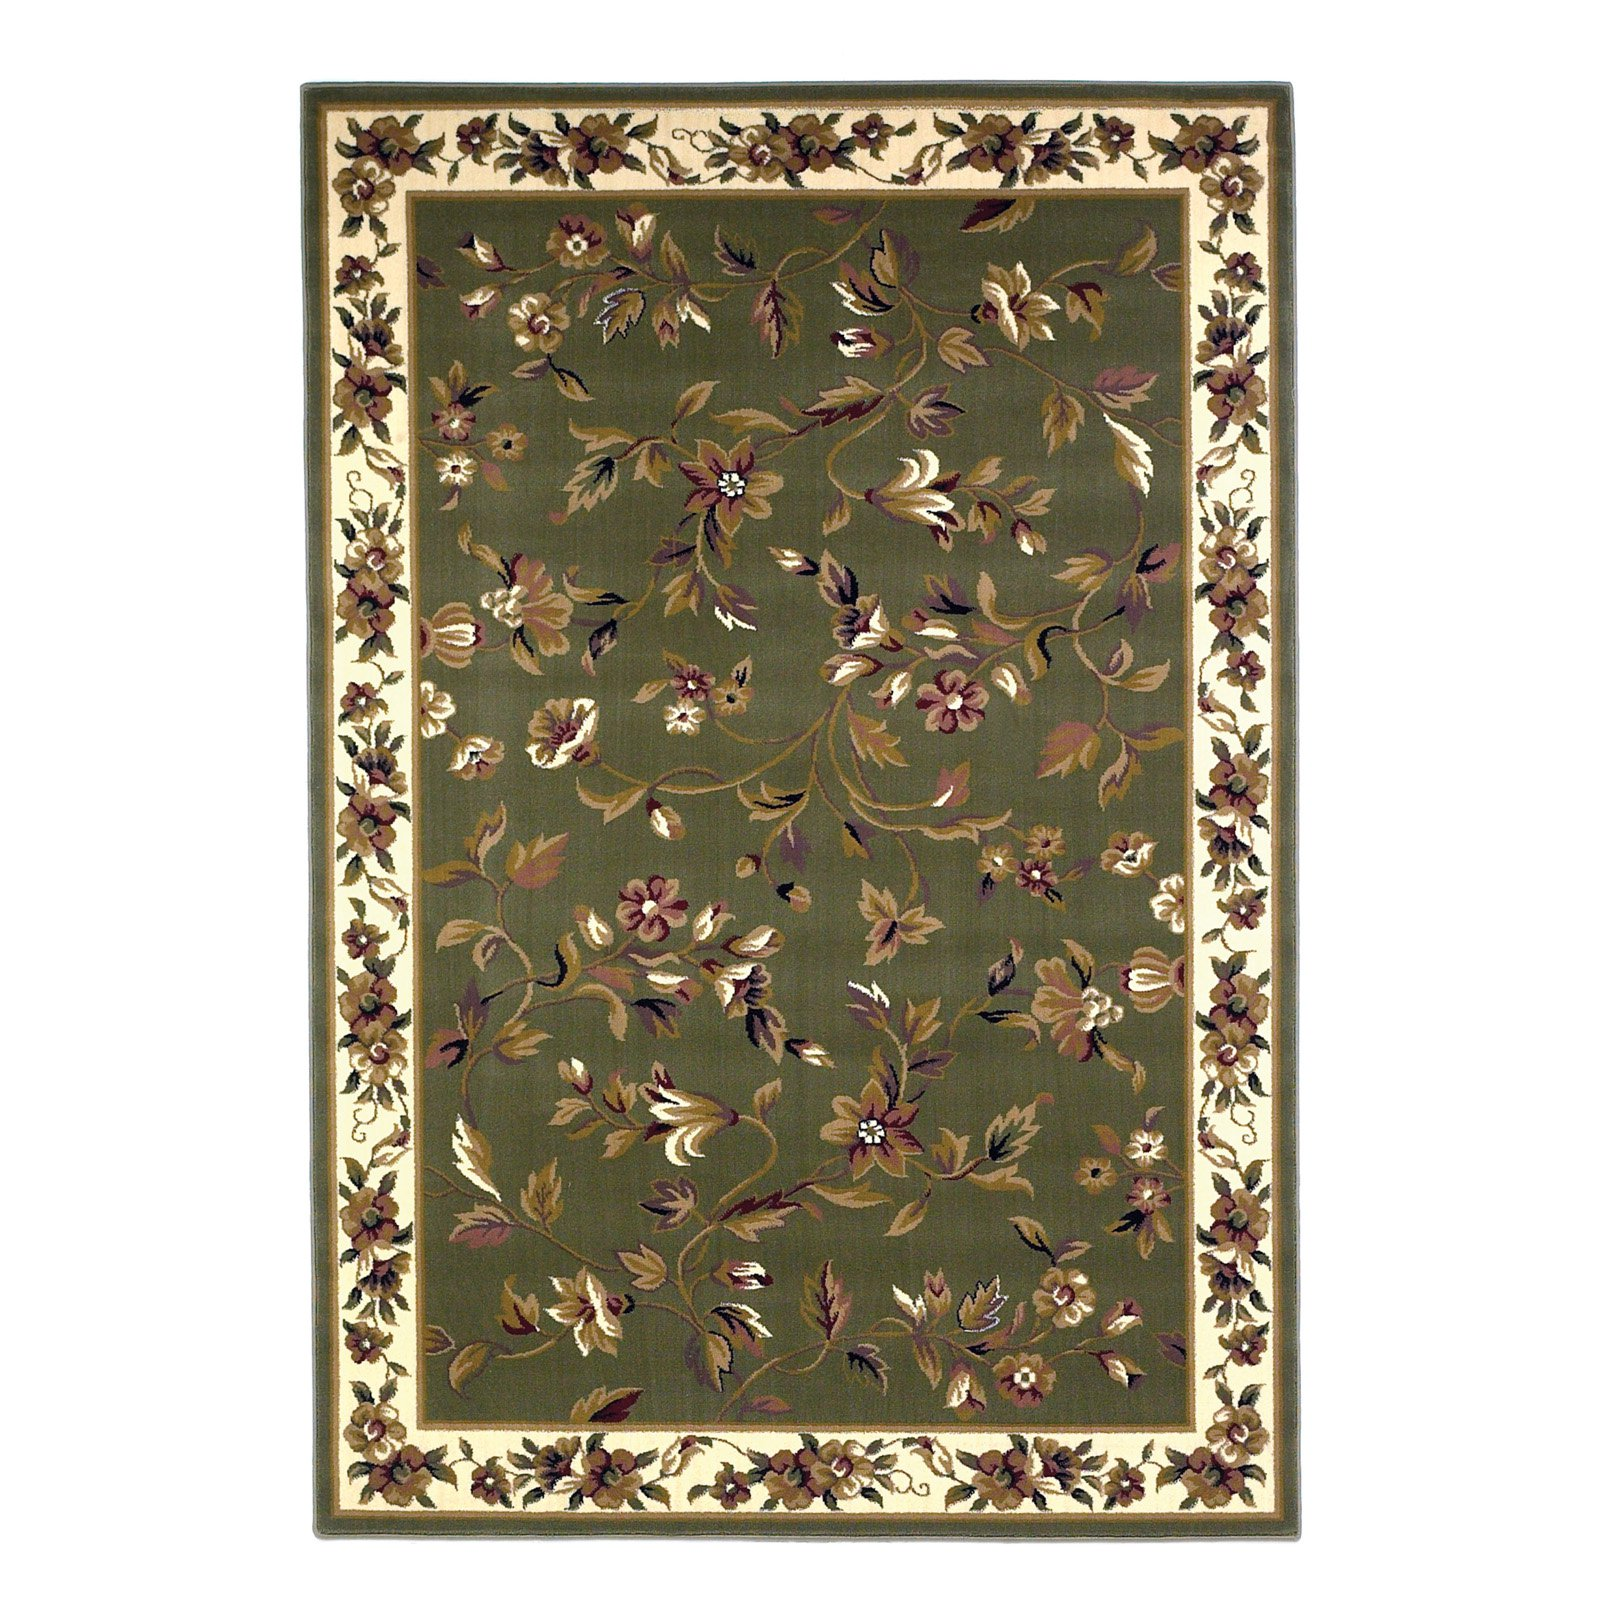 Click here to buy KAS Rugs Cambridge 733 Floral Vine Area Rug by KAS Rugs.